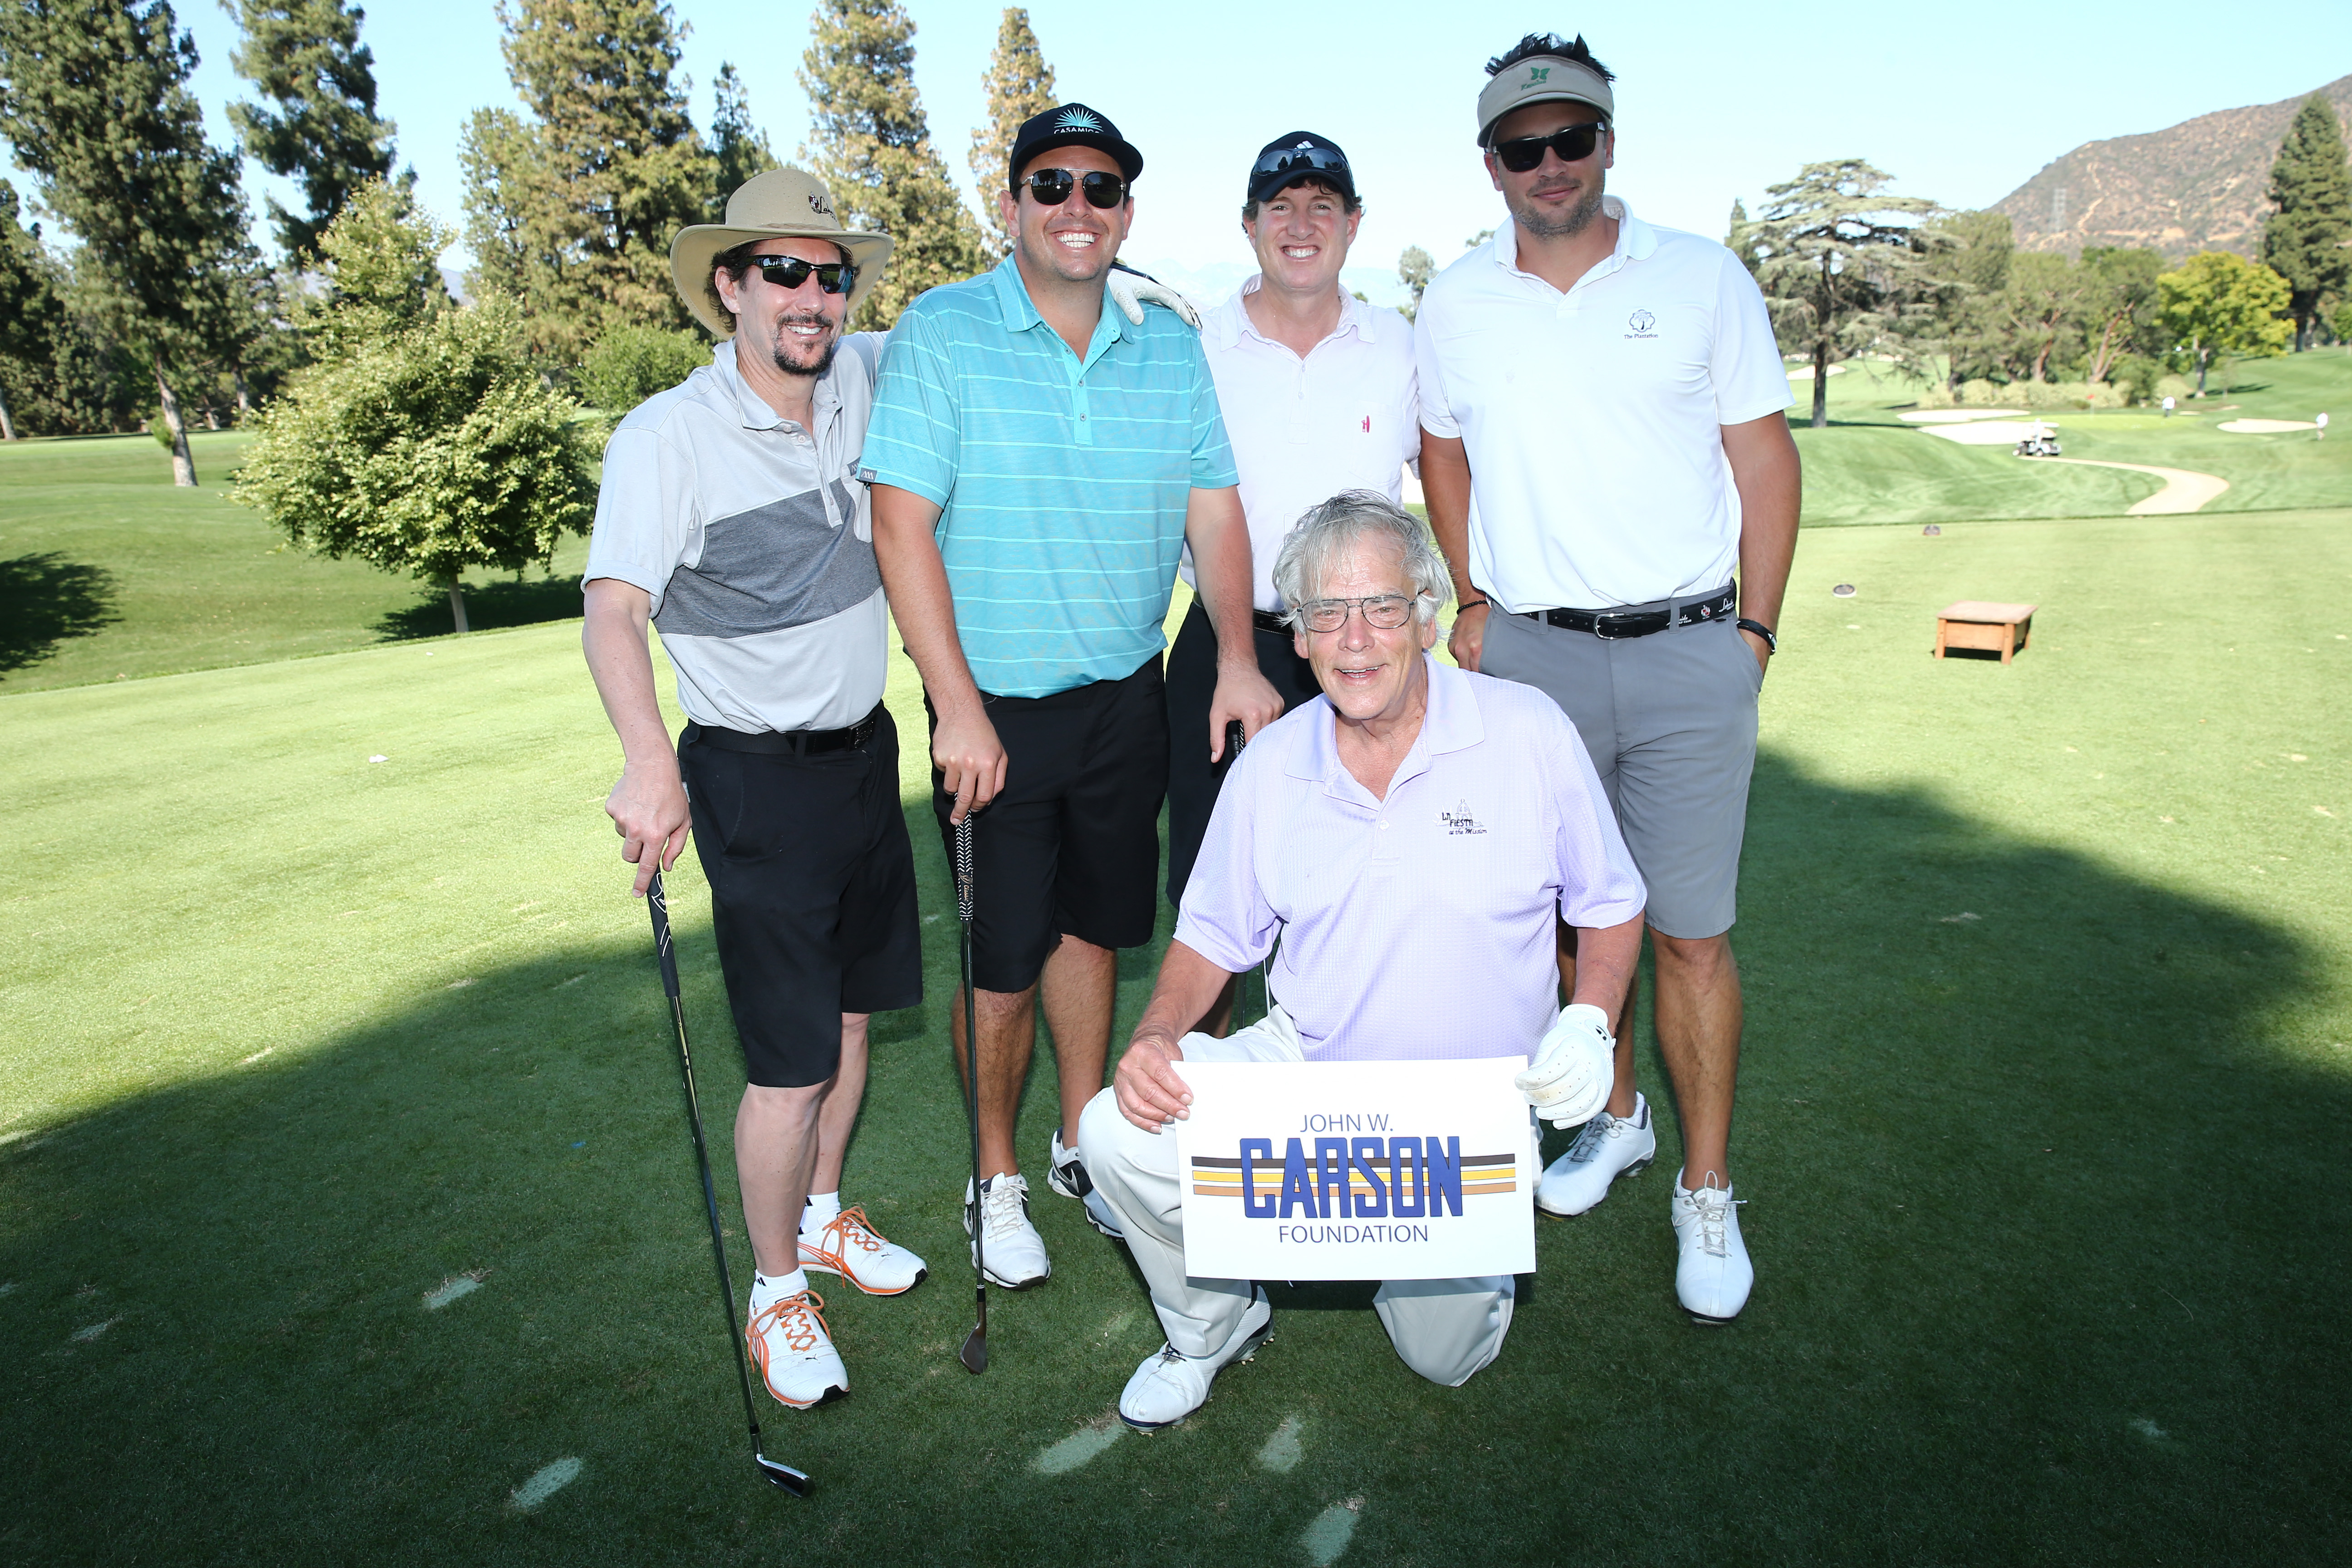 Larry Witzer, Travis Johnson, Tony Behrstock, Lee Davis, and Tom Welling of Team Carson Foundation play at the Screen Actors Guild Foundation's 6th Annual Los Angeles Golf Classic on June 8, 2015 in Burbank, California. (Photo by Mark Davis/Getty Images for The Screen Actors Guild Foundation)